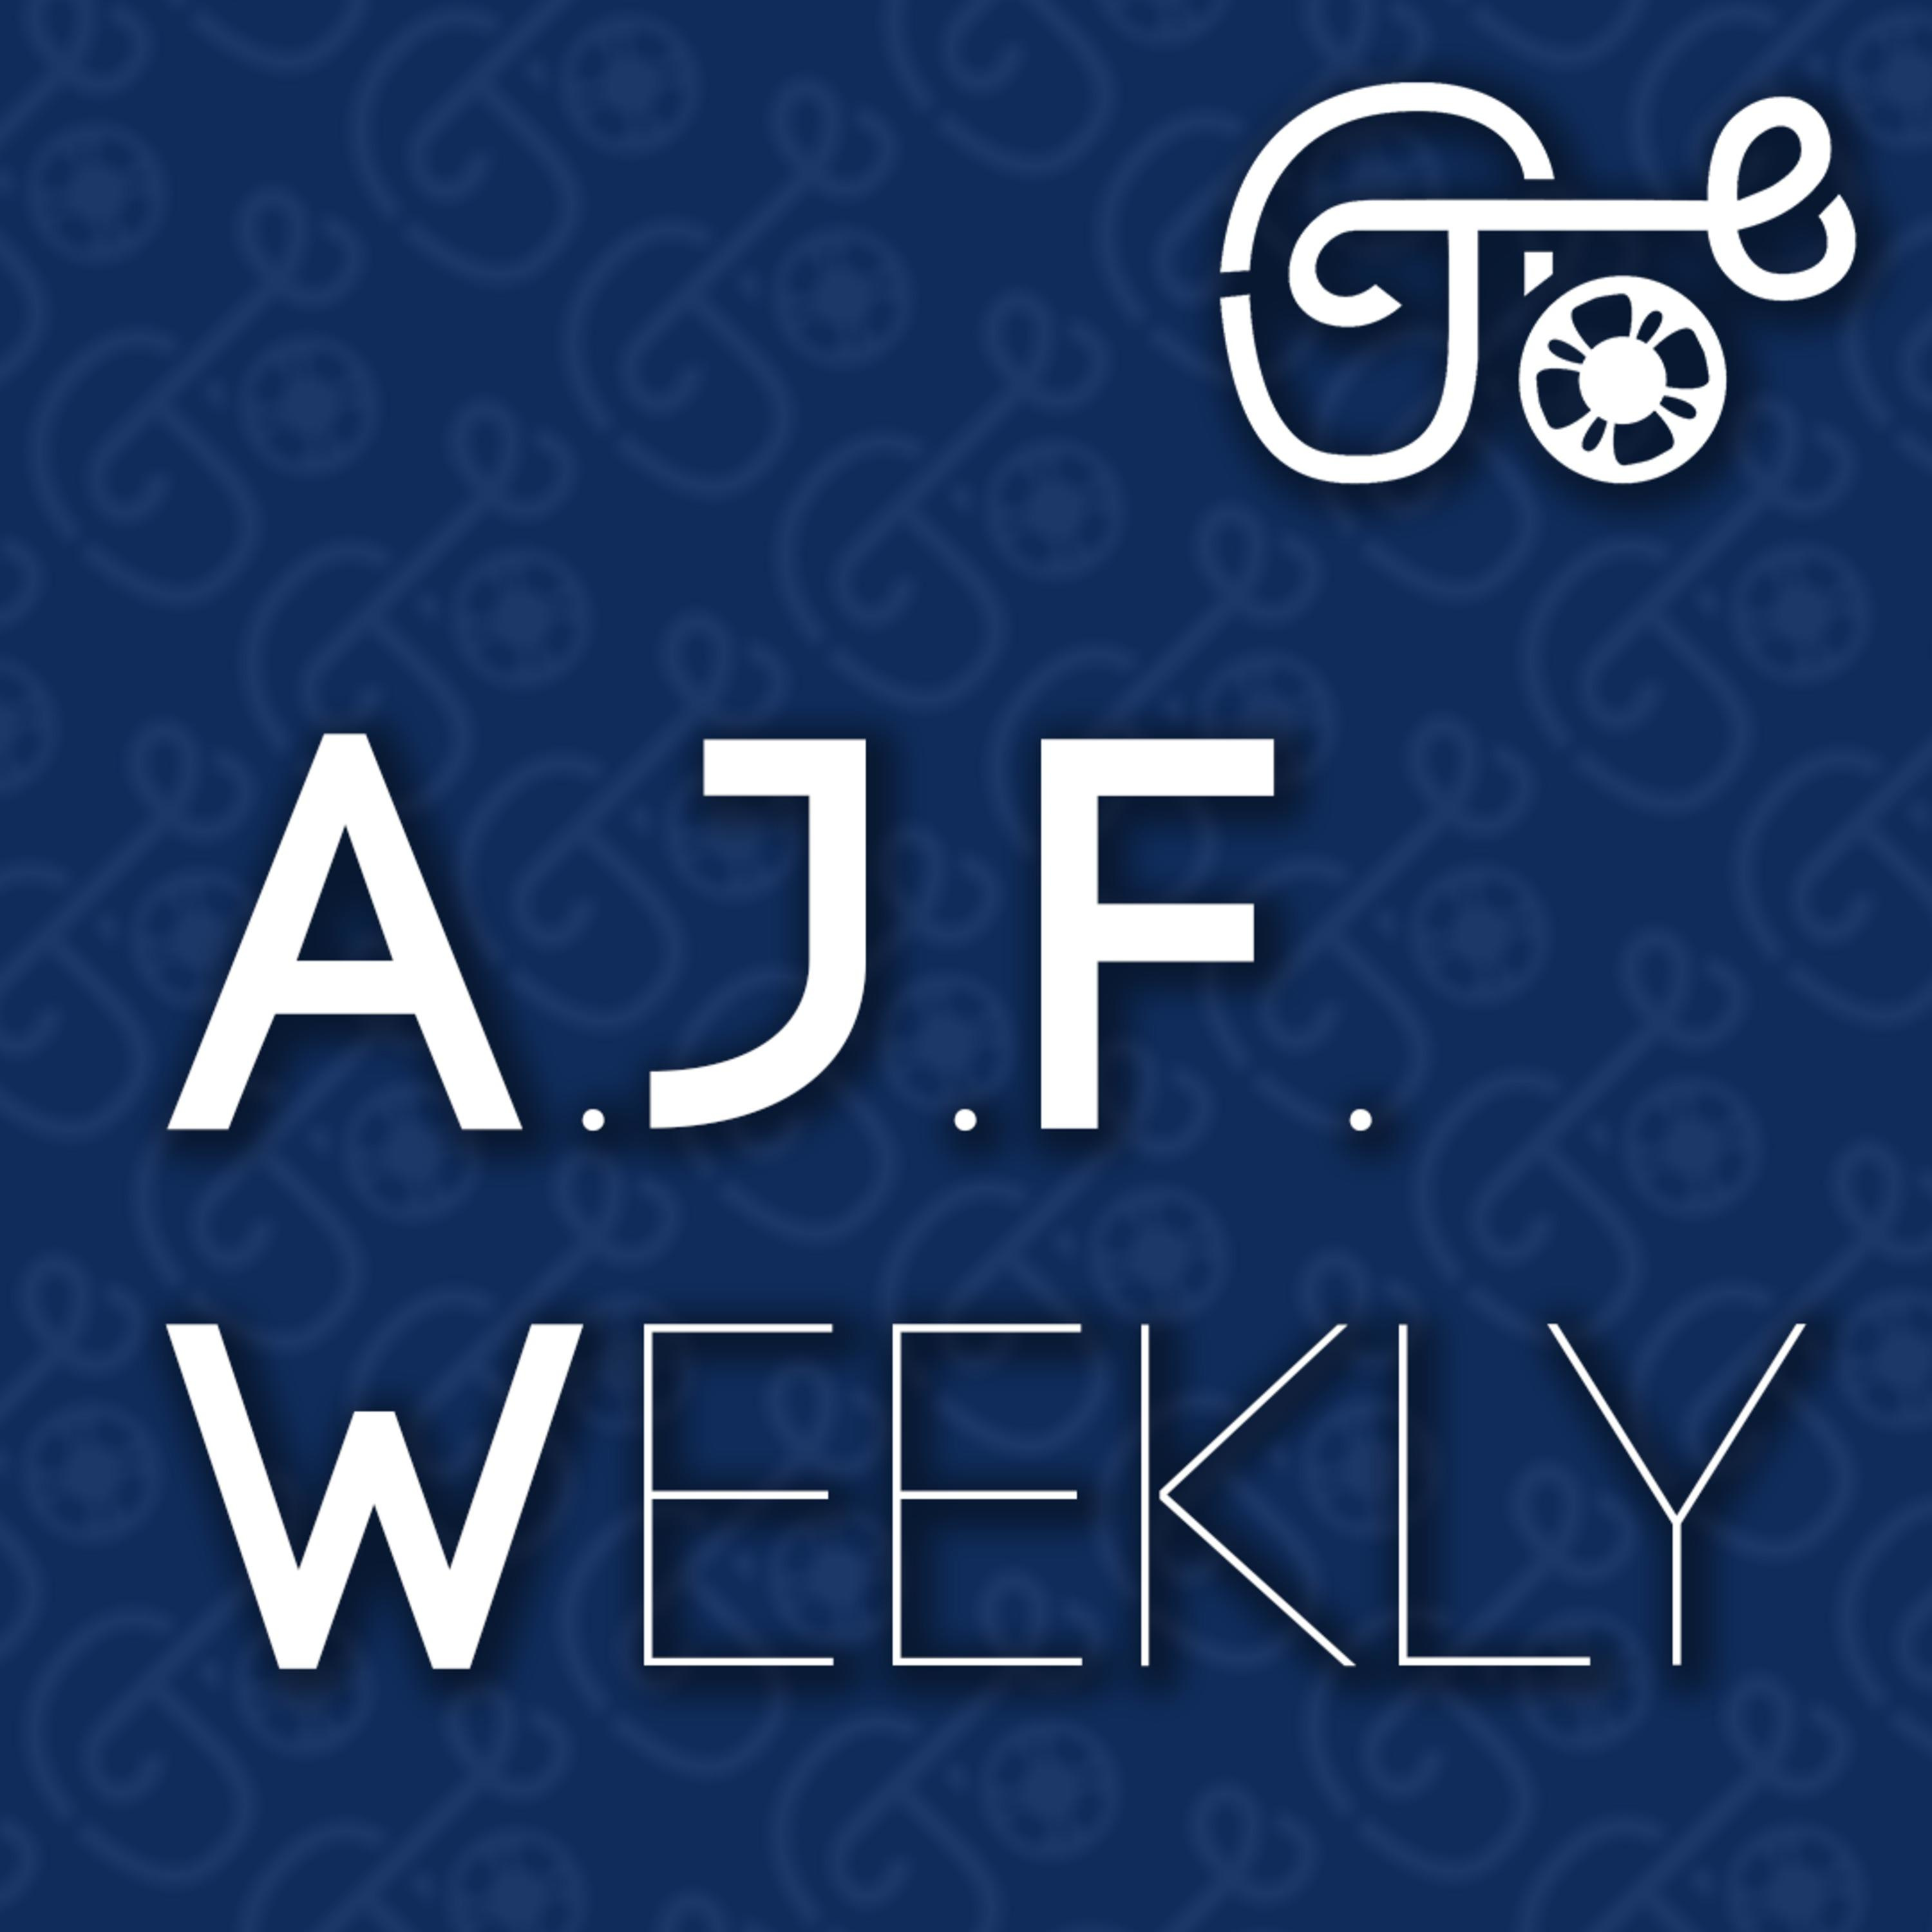 John Wick 3 and the Future of Gaming | AJF Weekly Episode 4